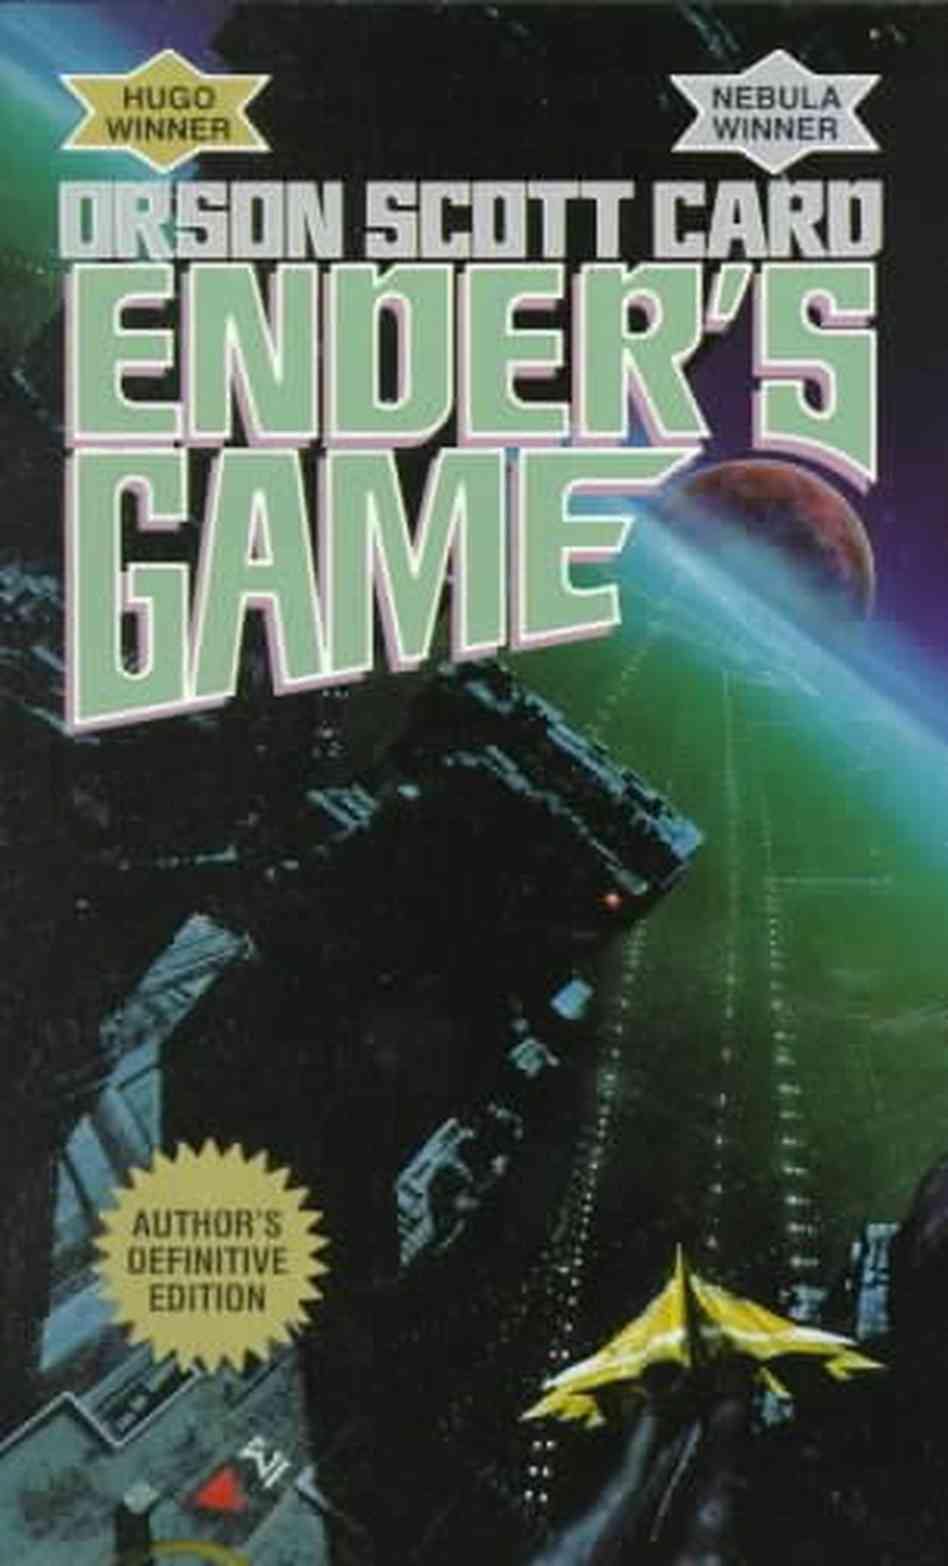 Book Cover Series S : Ender s ansible game fansite a news resource